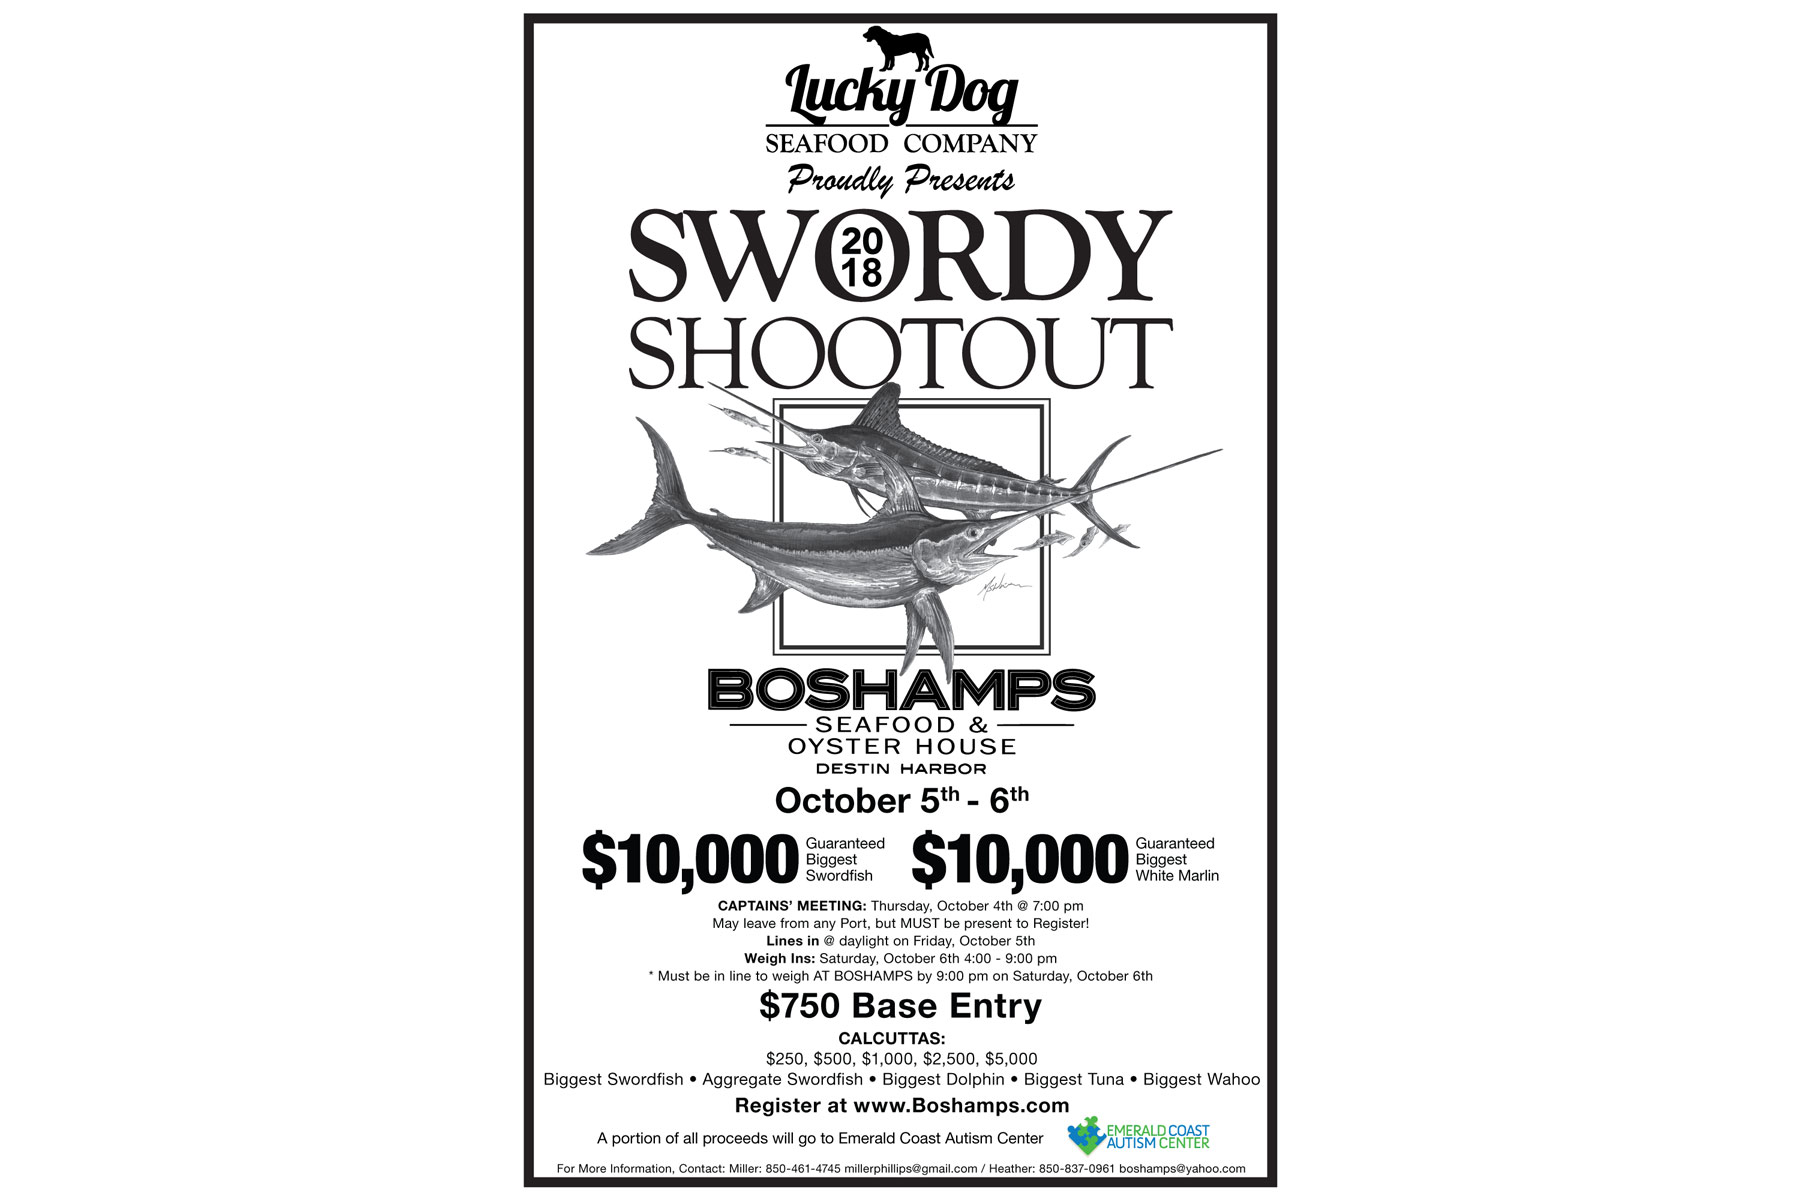 "2018 Swordy Shootout 11"" x 17"" Tabloid Poster"